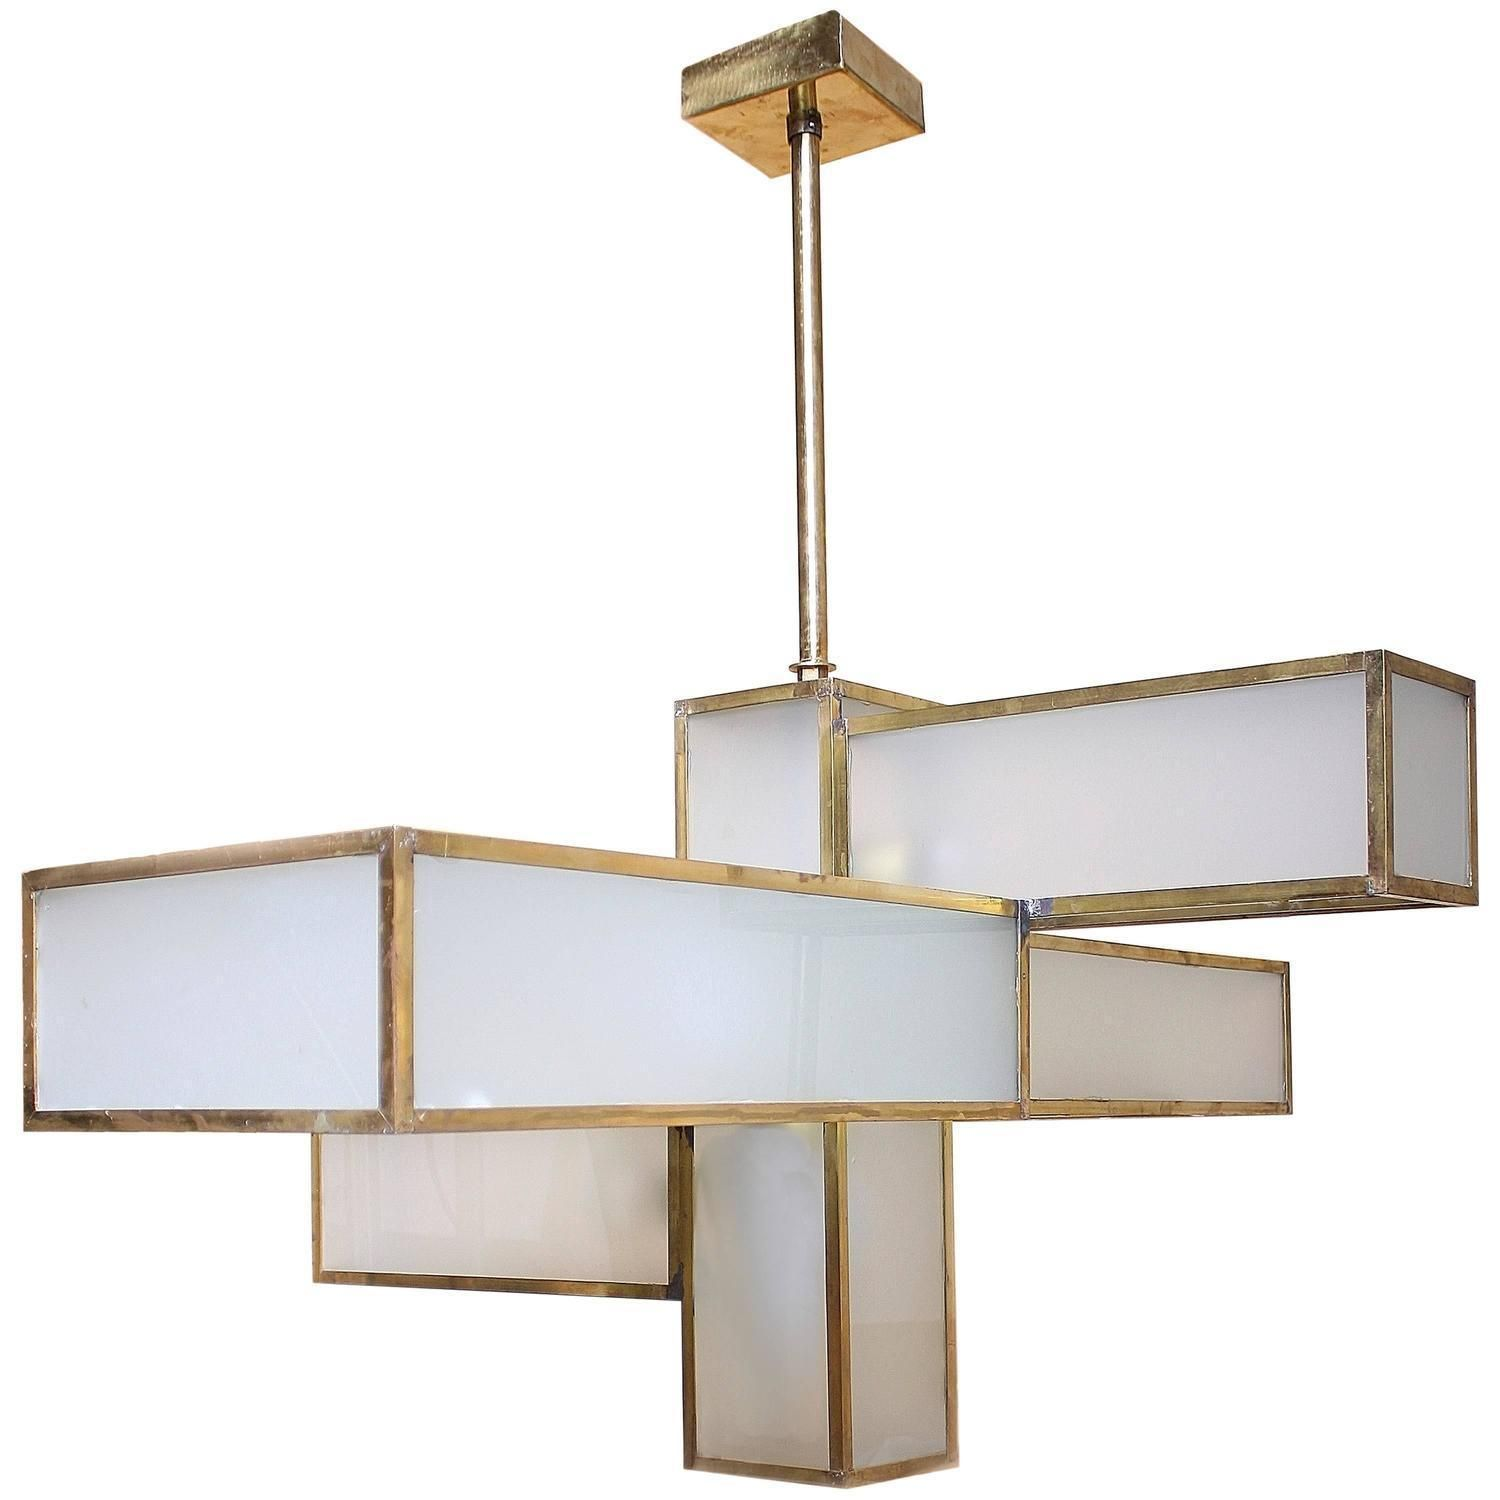 A Large Scale, Gorgeous Chandelier Made From Opaque Glass, Forged Brass